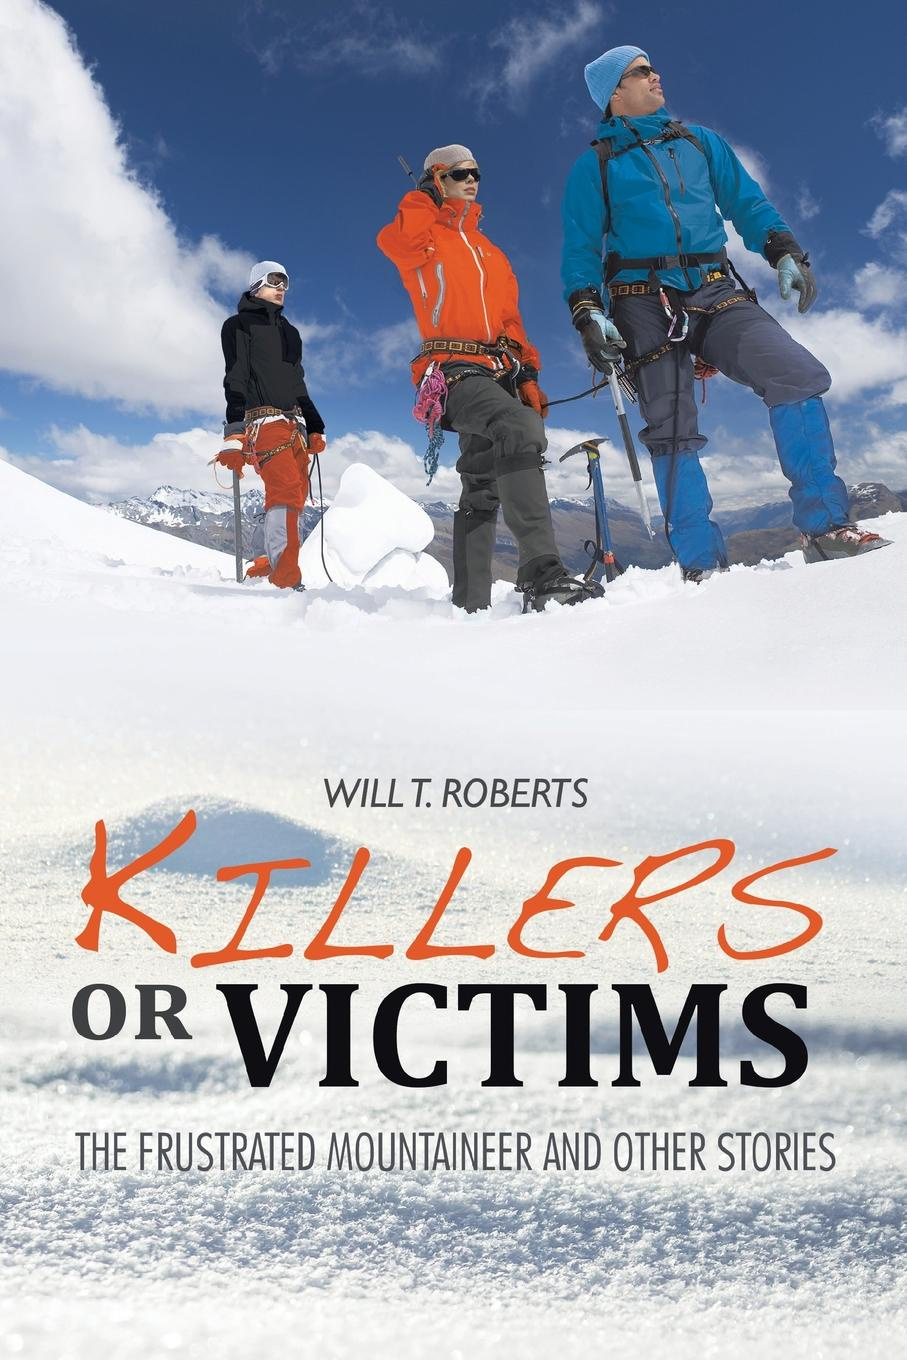 купить Will T. Roberts Killers or Victims. The Frustrated Mountaineer and Other Stories по цене 2364 рублей